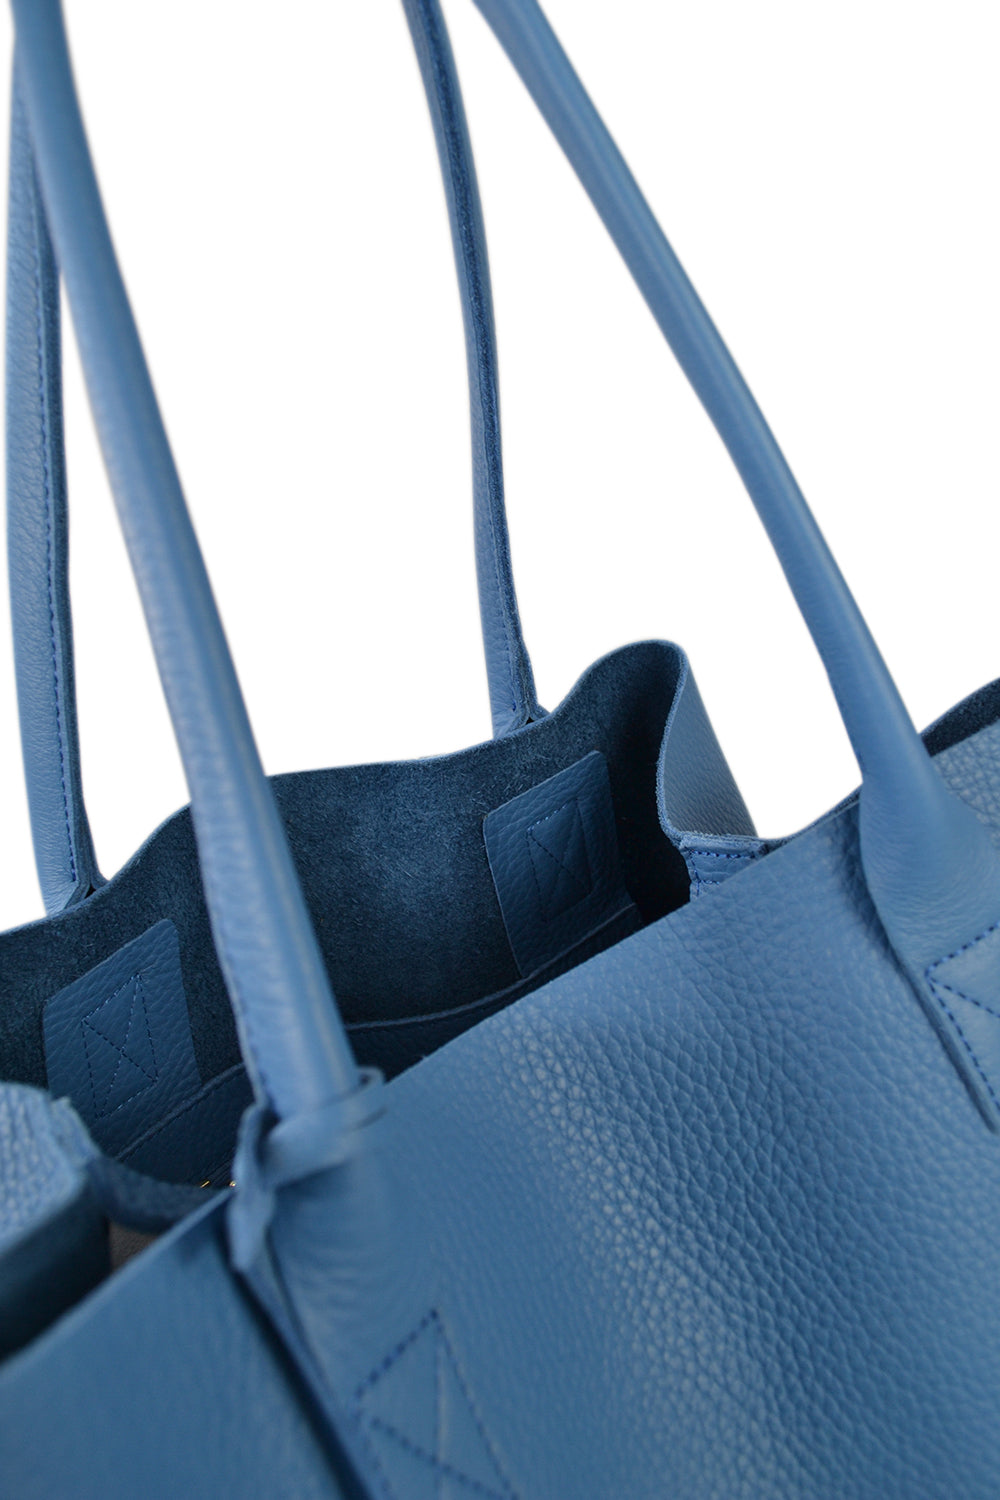 BIRCHGROVE - Addison Road Light Blue Genuine Pebbled Leather Tote - Addison Road